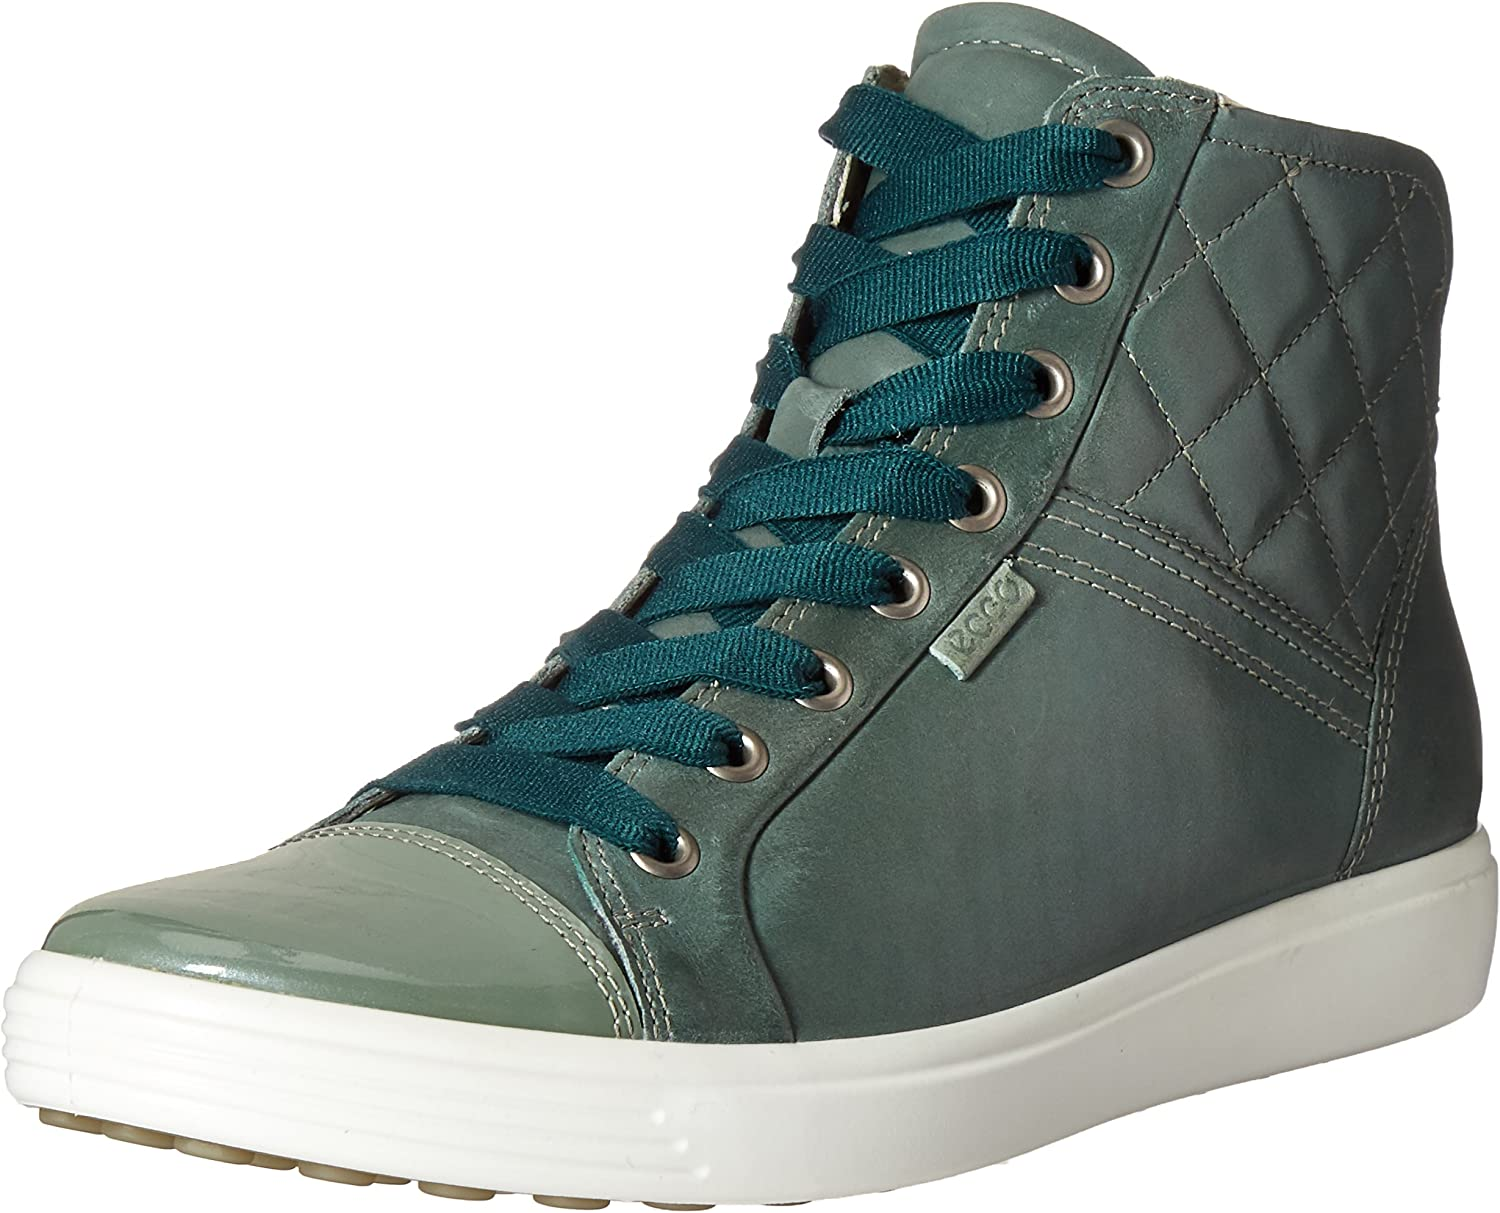 ECCO shoes Women's Soft 7 Hightop Quilted Lace up shoes, Frosty Green, 42 EU 11-11.5 M US